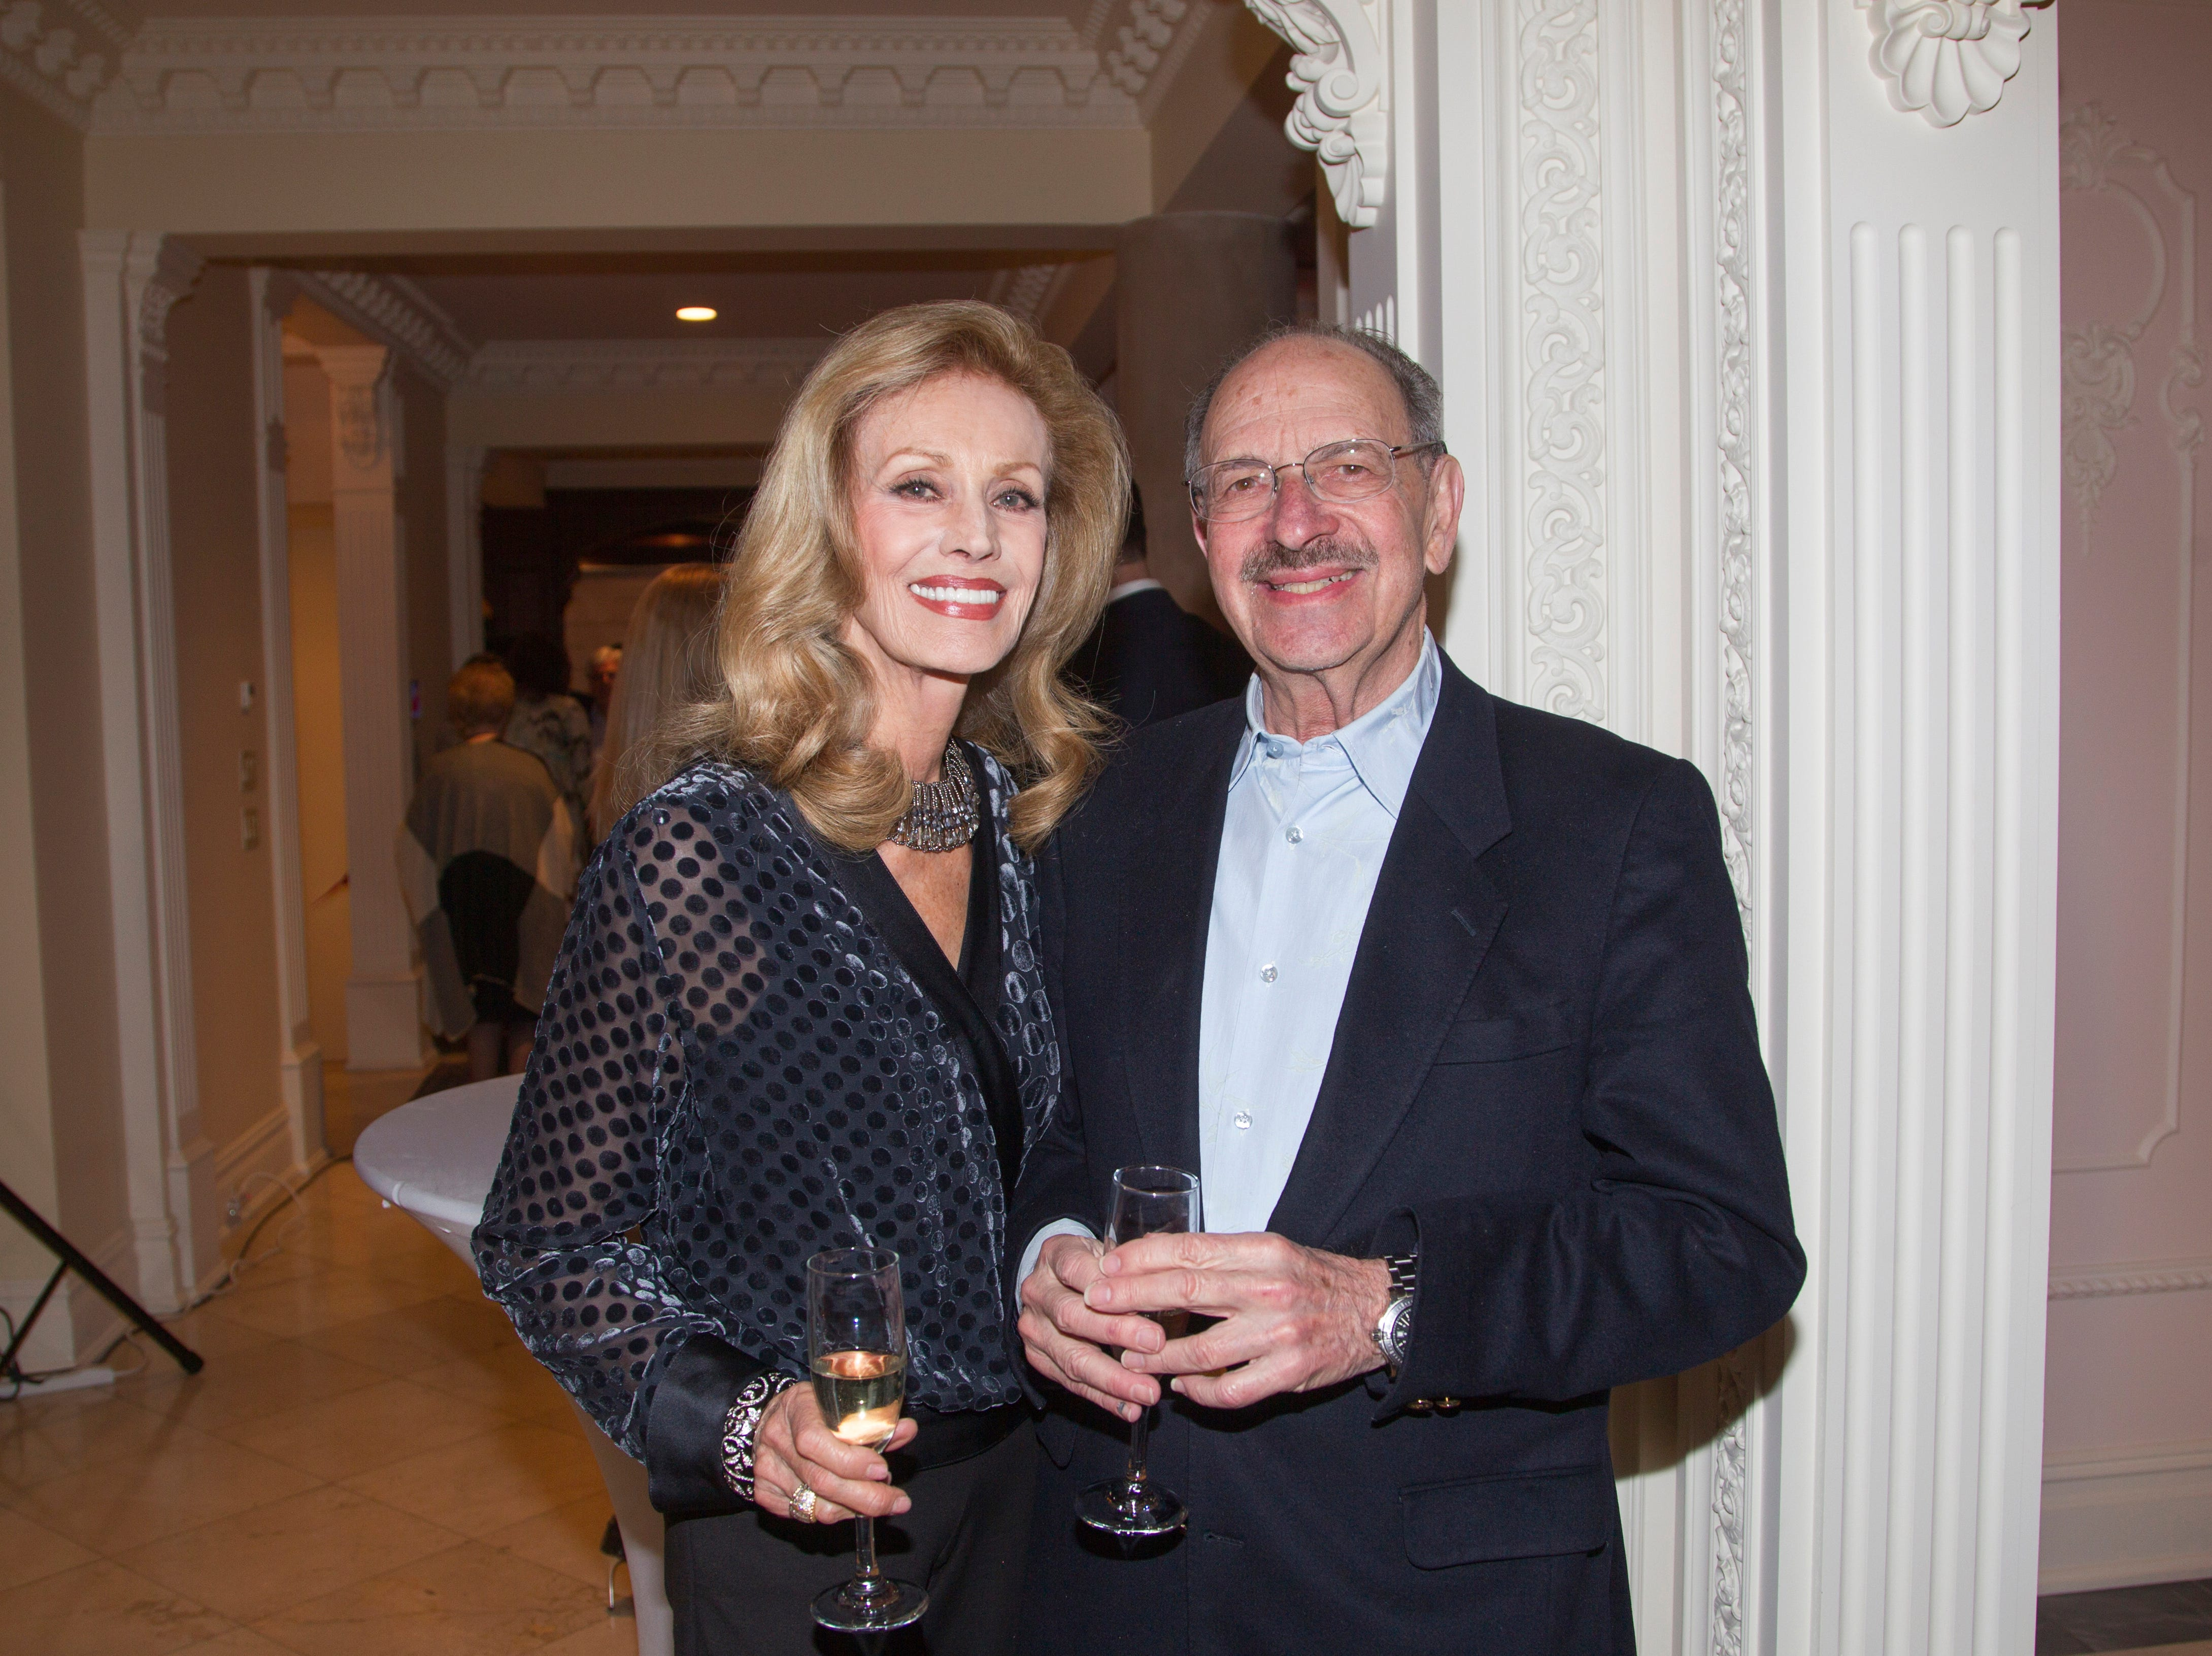 Diana Frankel-Hughes, David Gross. Saddle River Arts Council presents An Evening of Giving Back featureing Eric Genuis in Saddle River. 03/30/2019